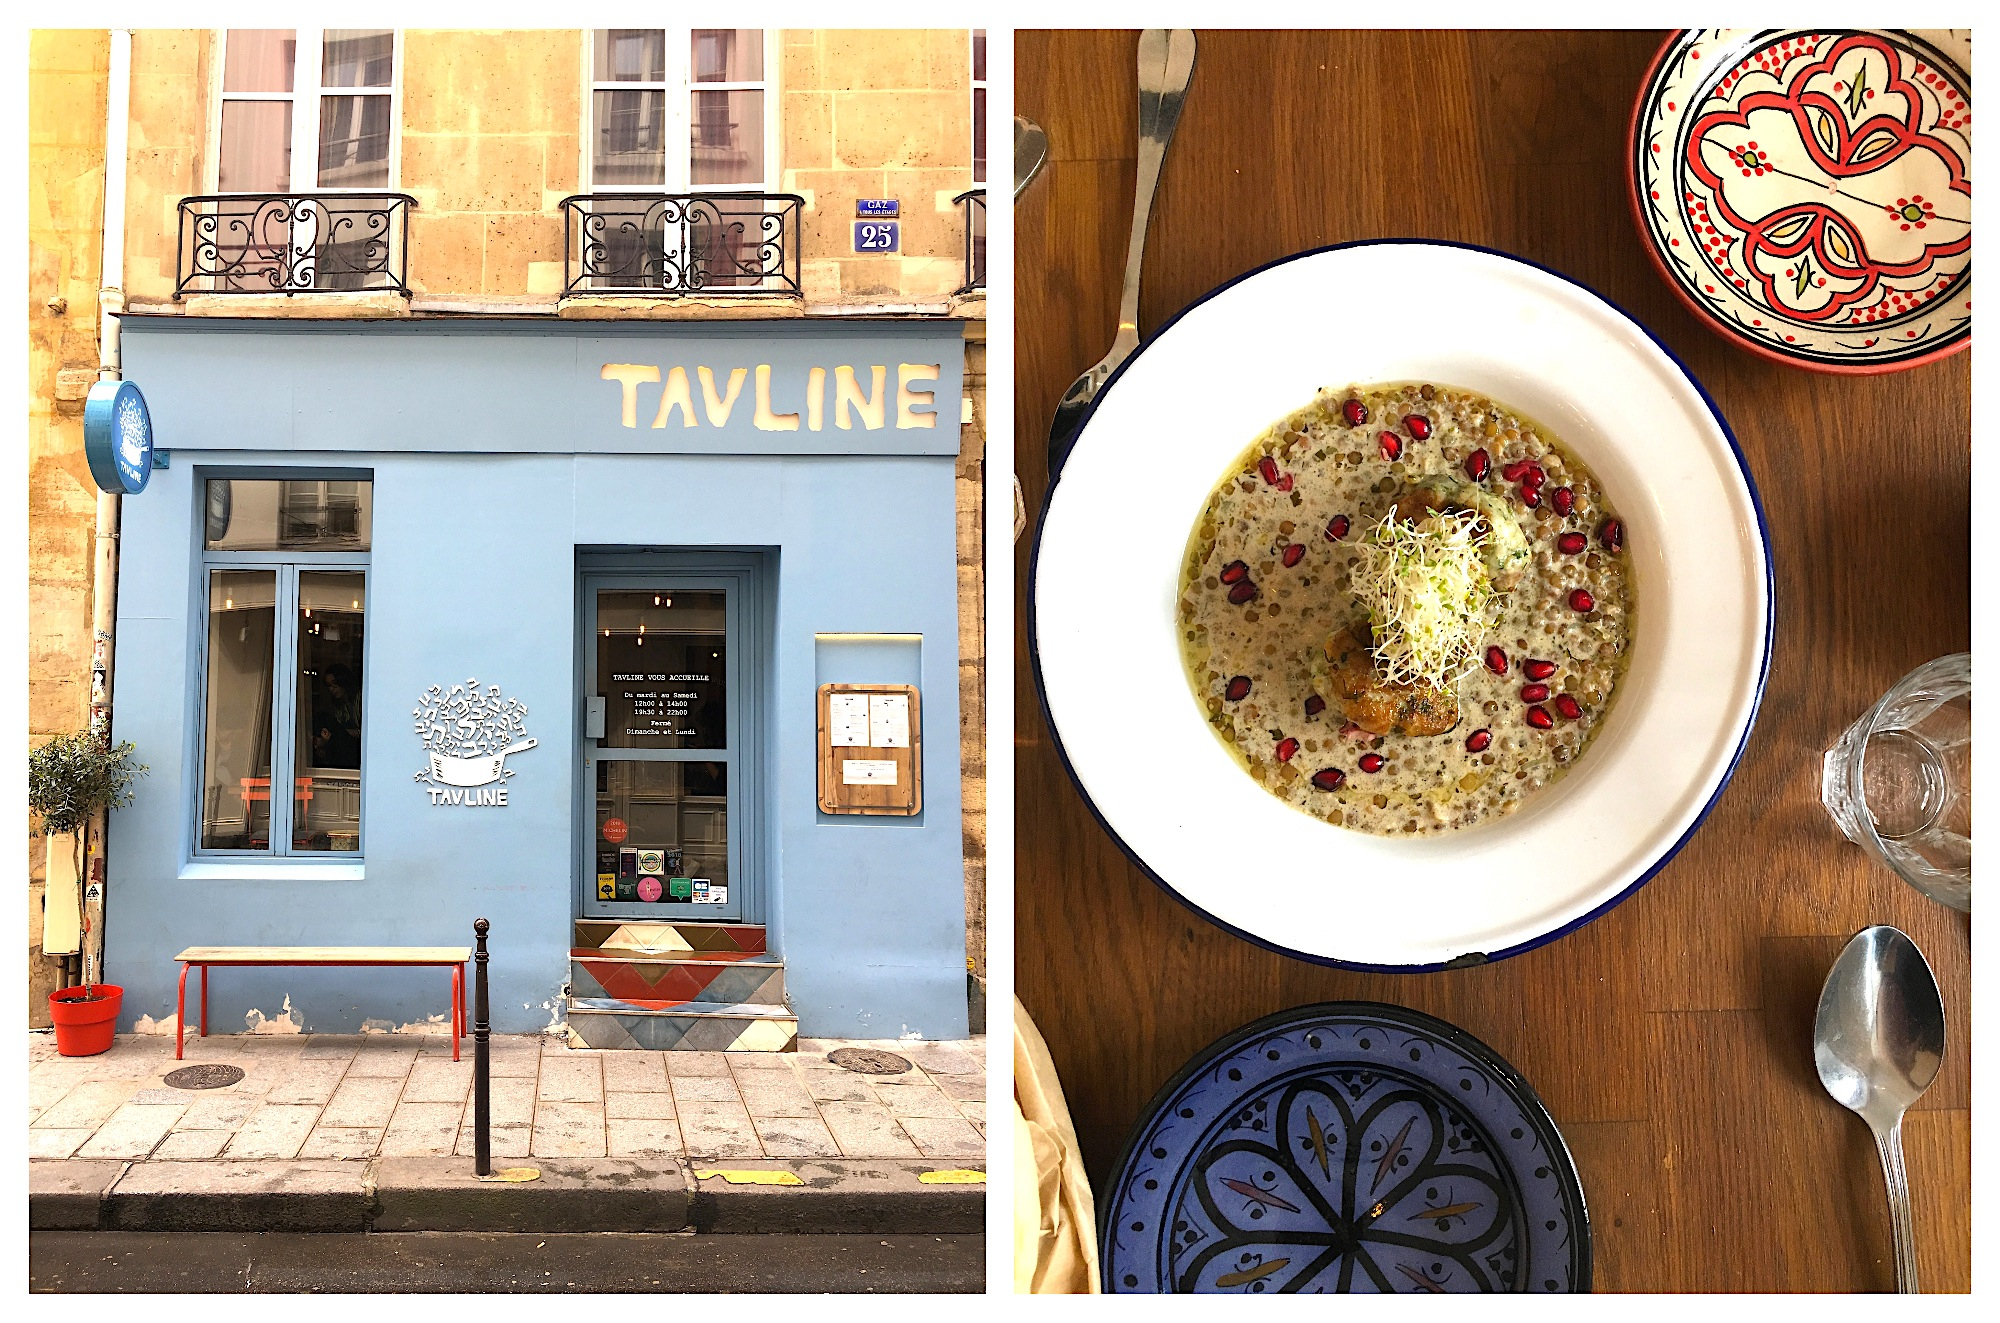 Some of the best Tel Aviv food in Paris is served at Marais restaurant Tavline, with its powder-blue facade (left). Its dishes are fresh and homemade (right).